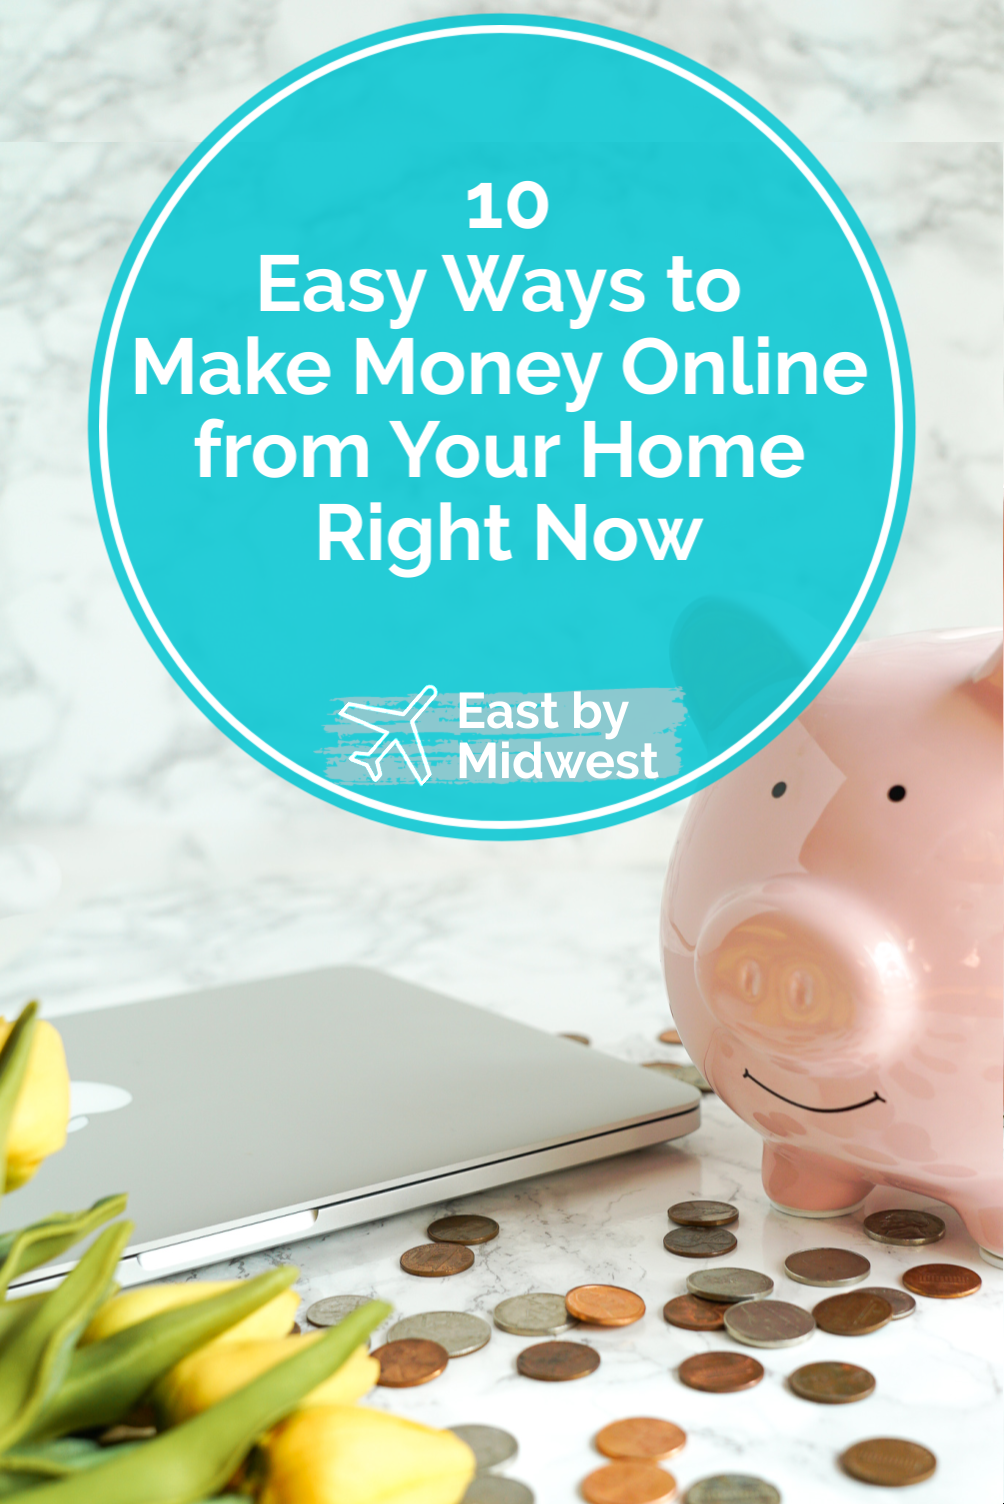 10 Easy Ways to Make Money Online from Your Home Right Now